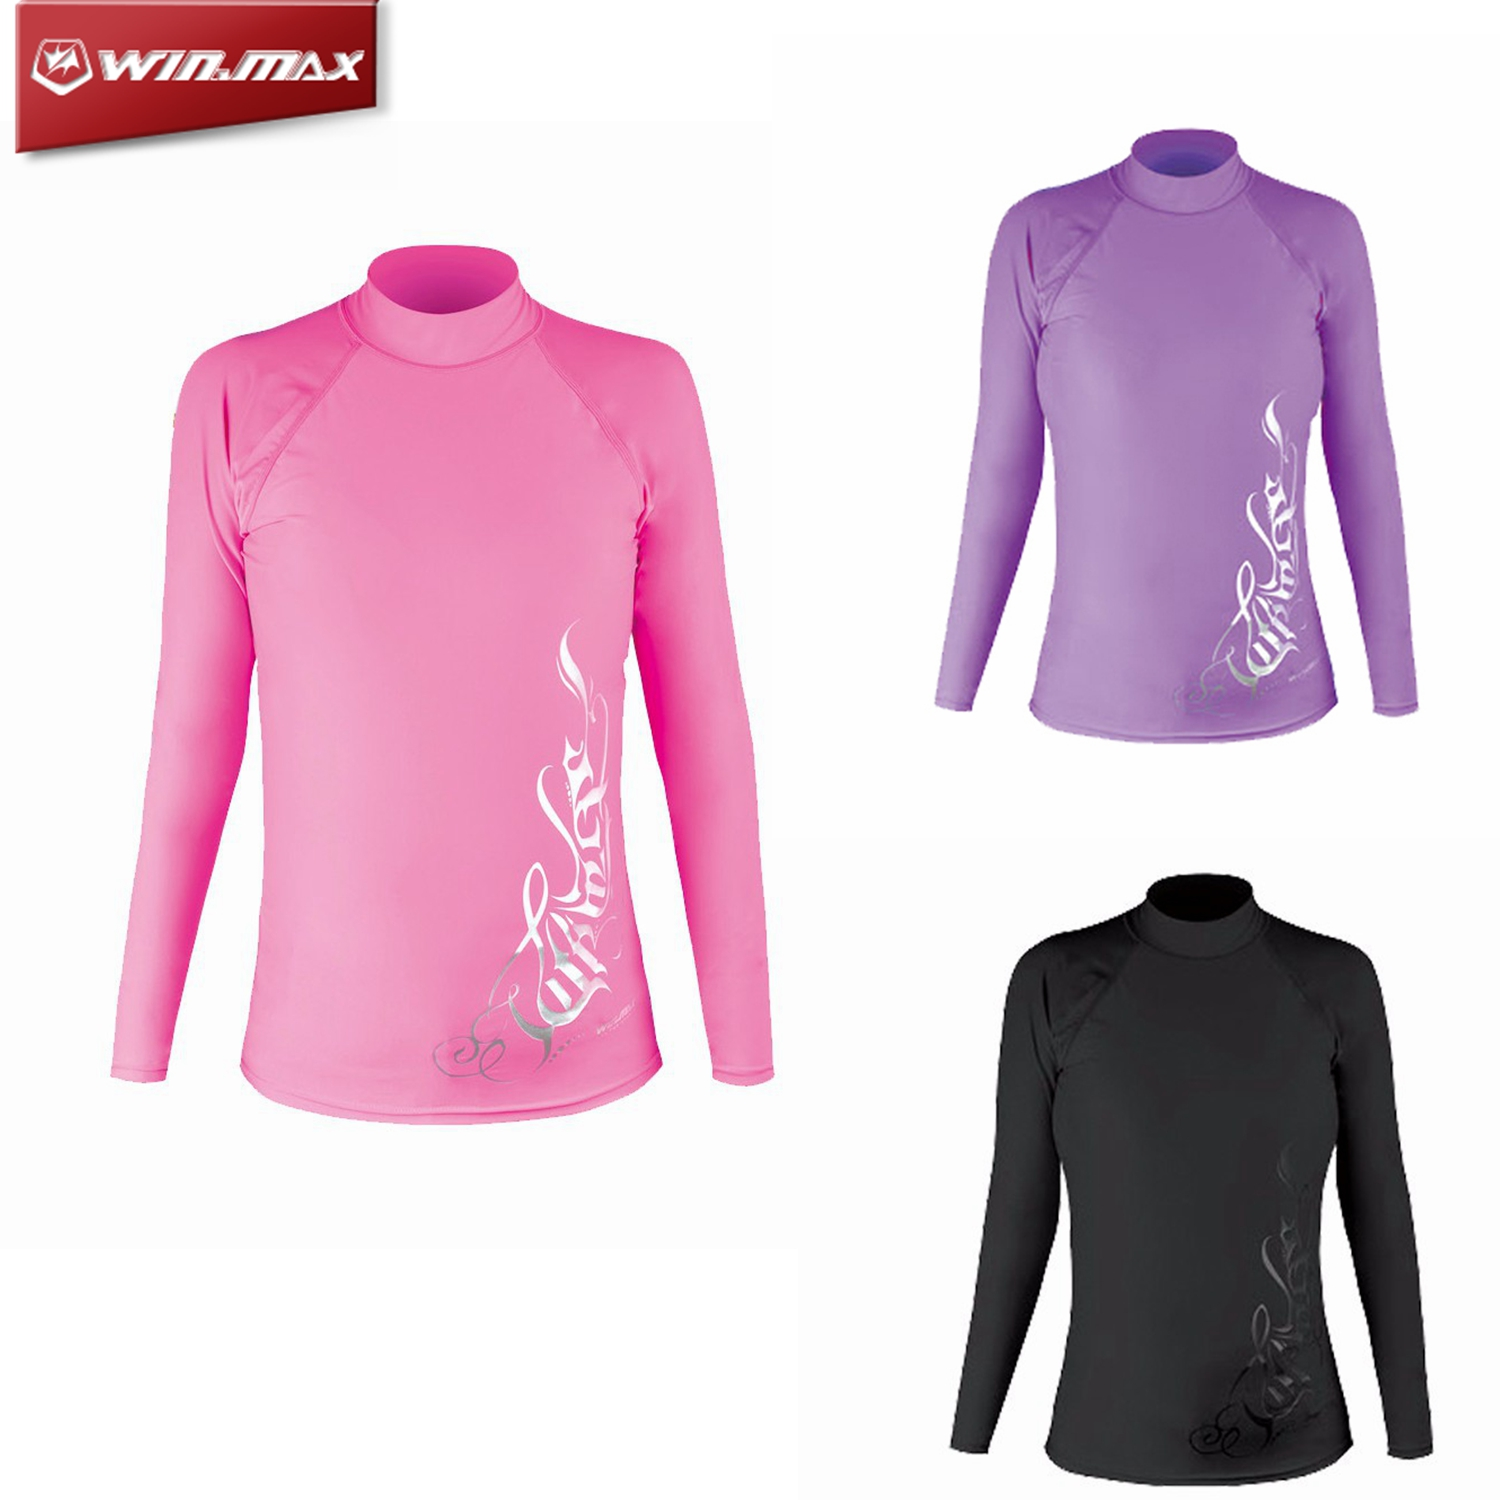 dc495735 Details about W Lycra Long Sleeve Wetsuit Shirt Scuba Diving Swimming  Surfing Rash Guard Women